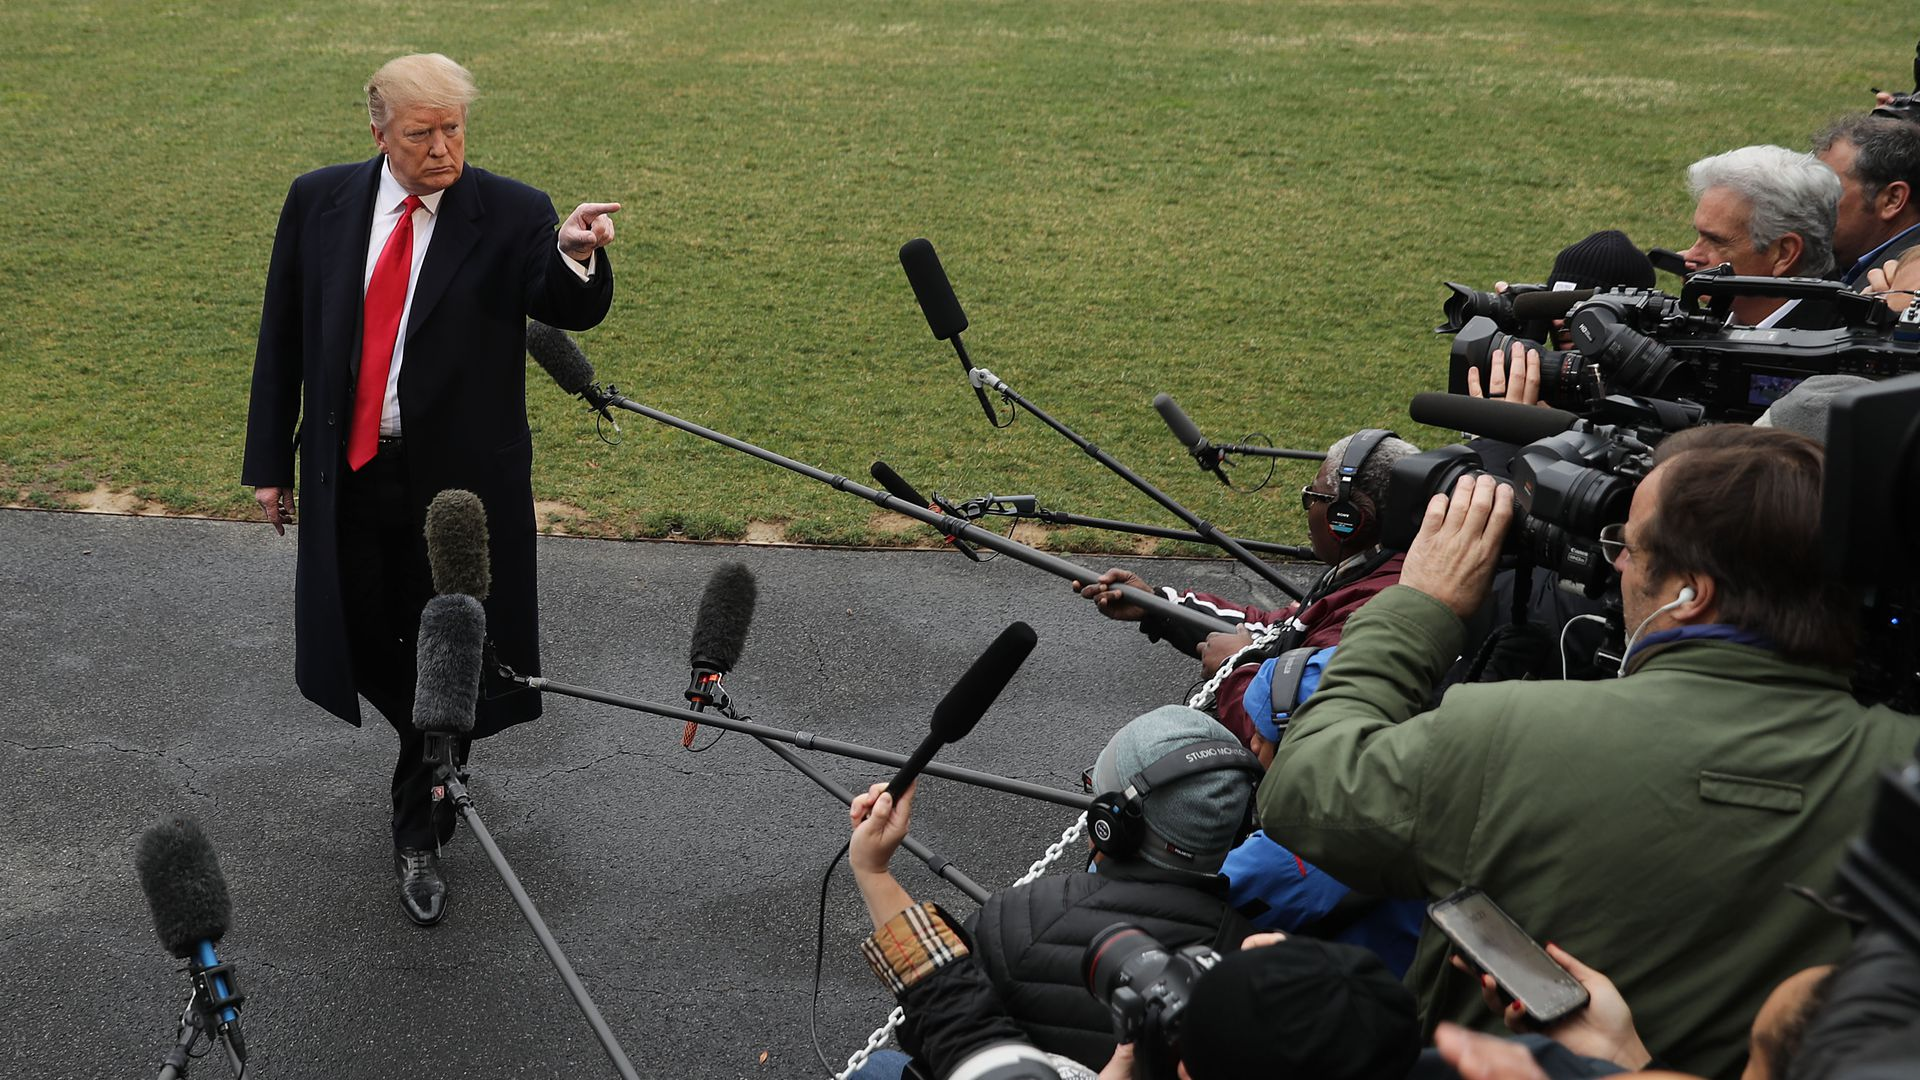 Trump pointing at reporters